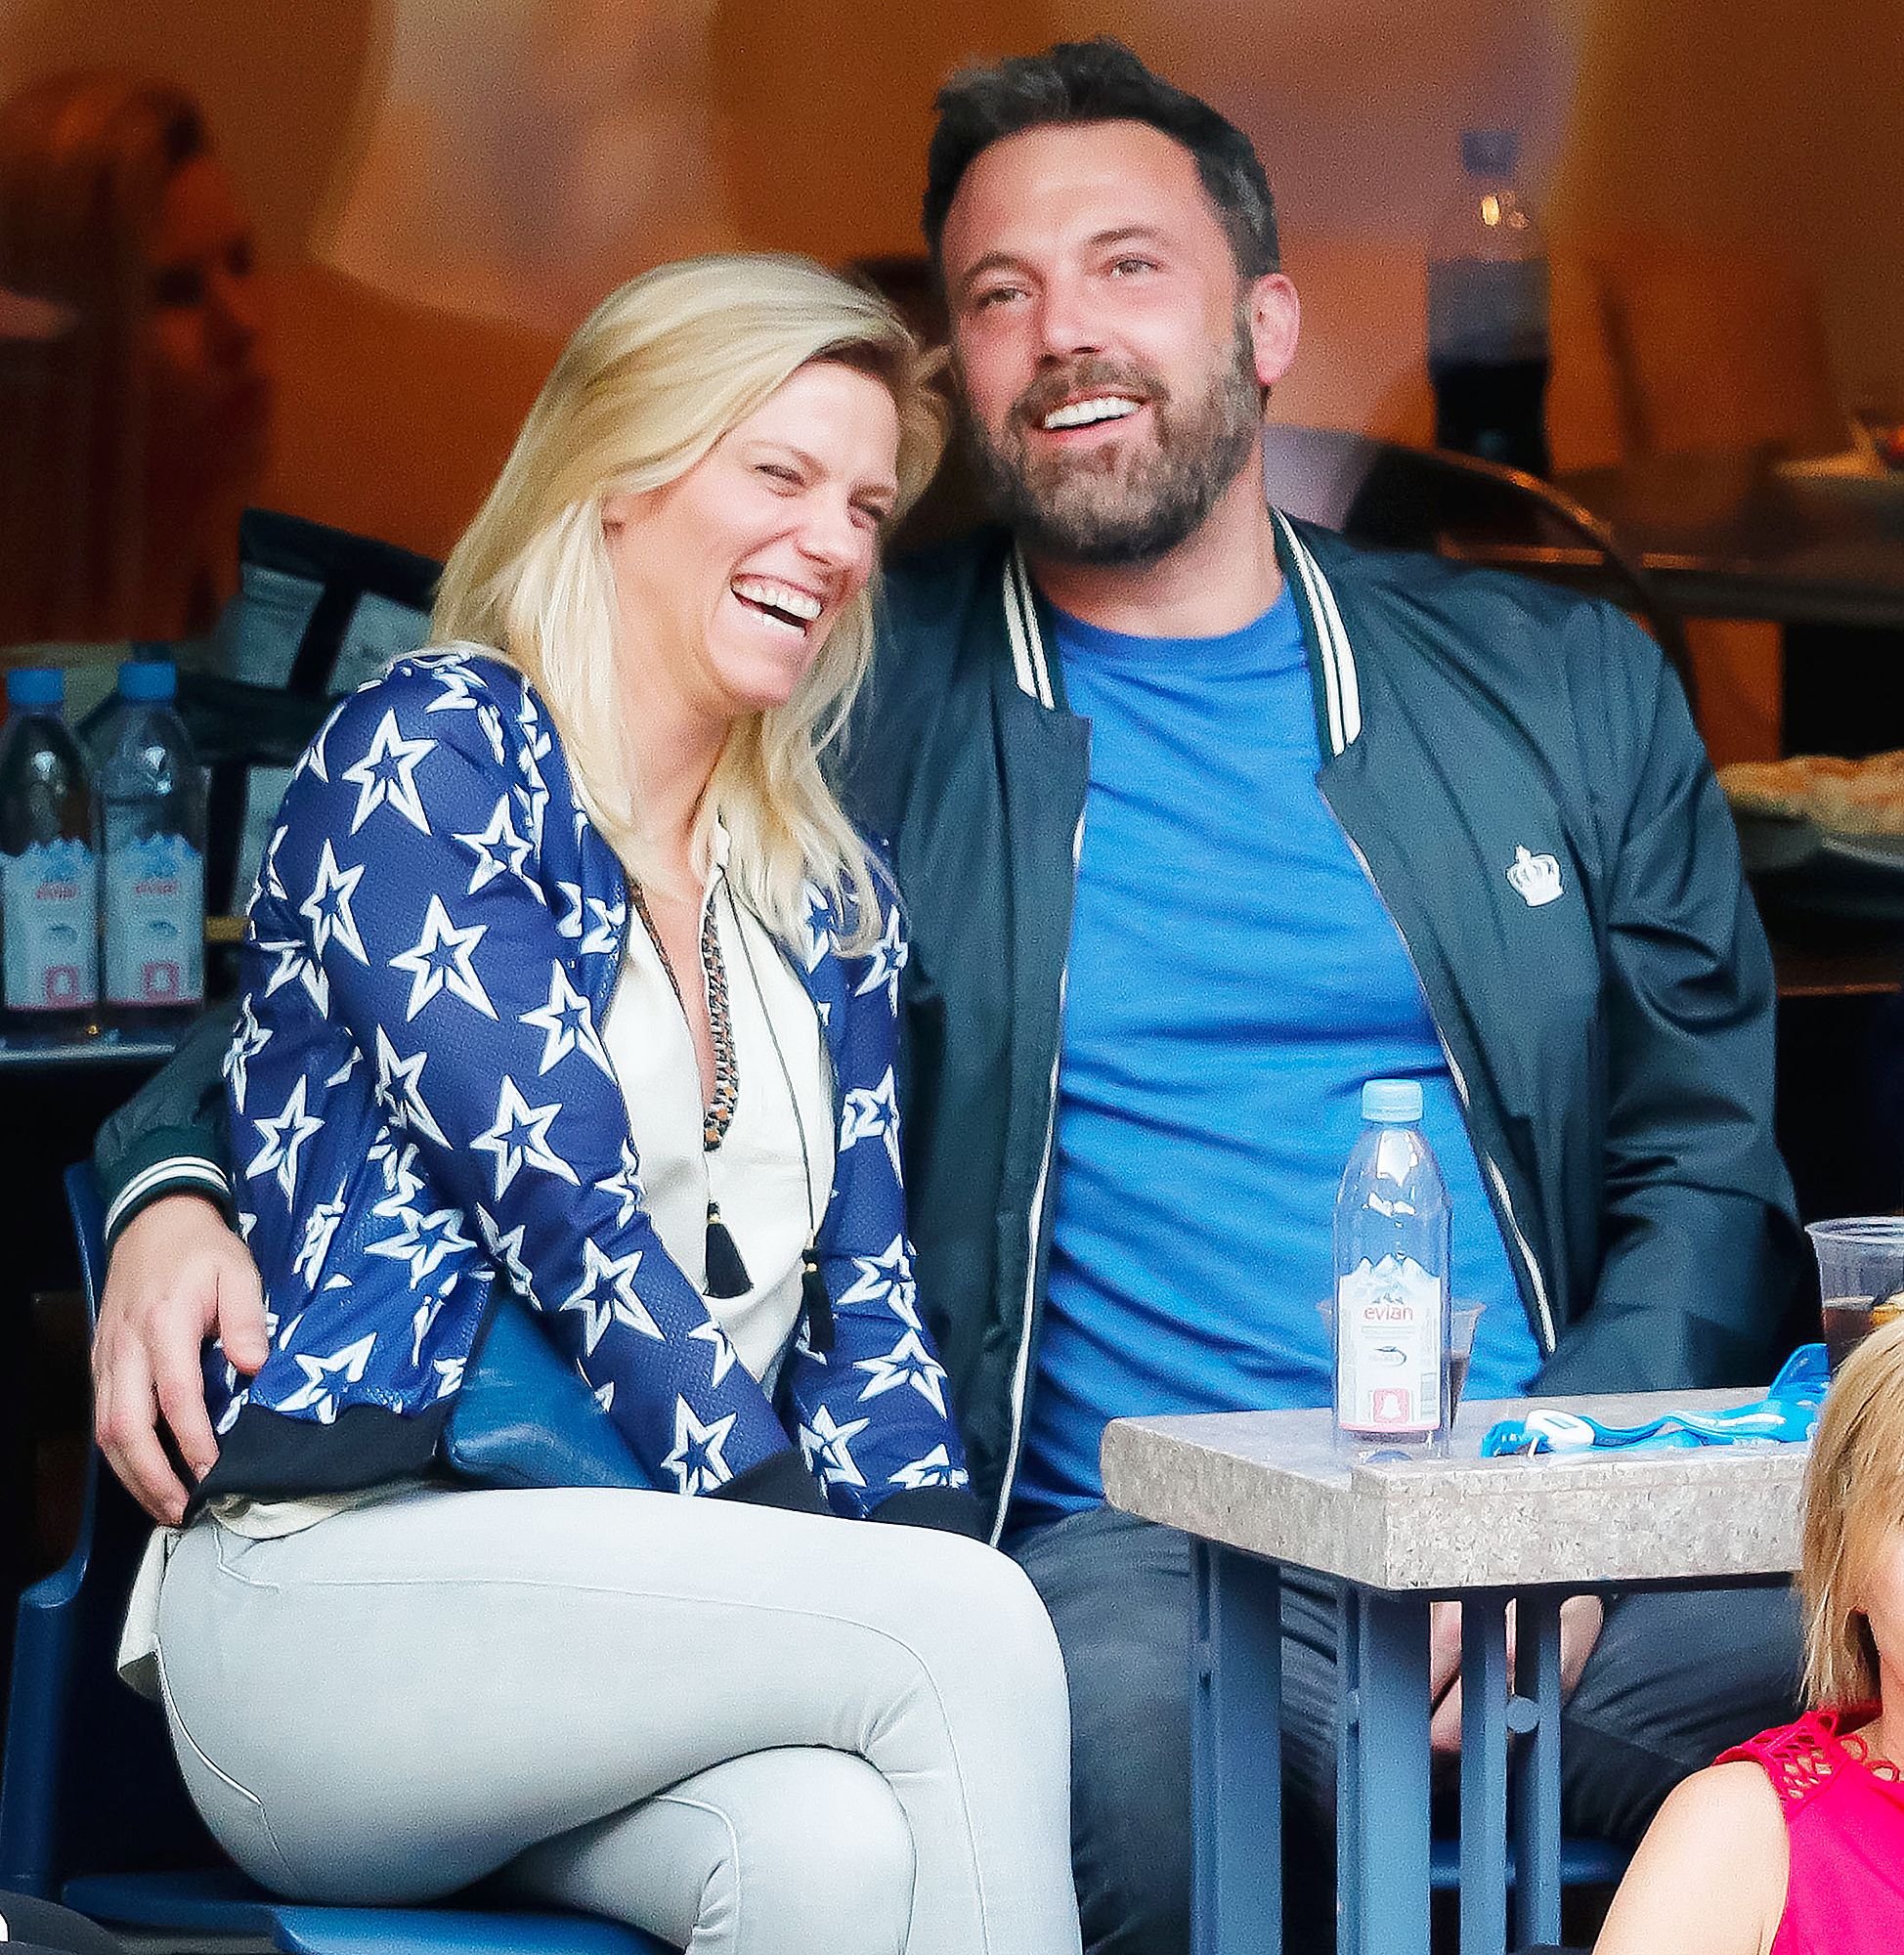 Lindsay Shookus Ben Affleck Split Rumors